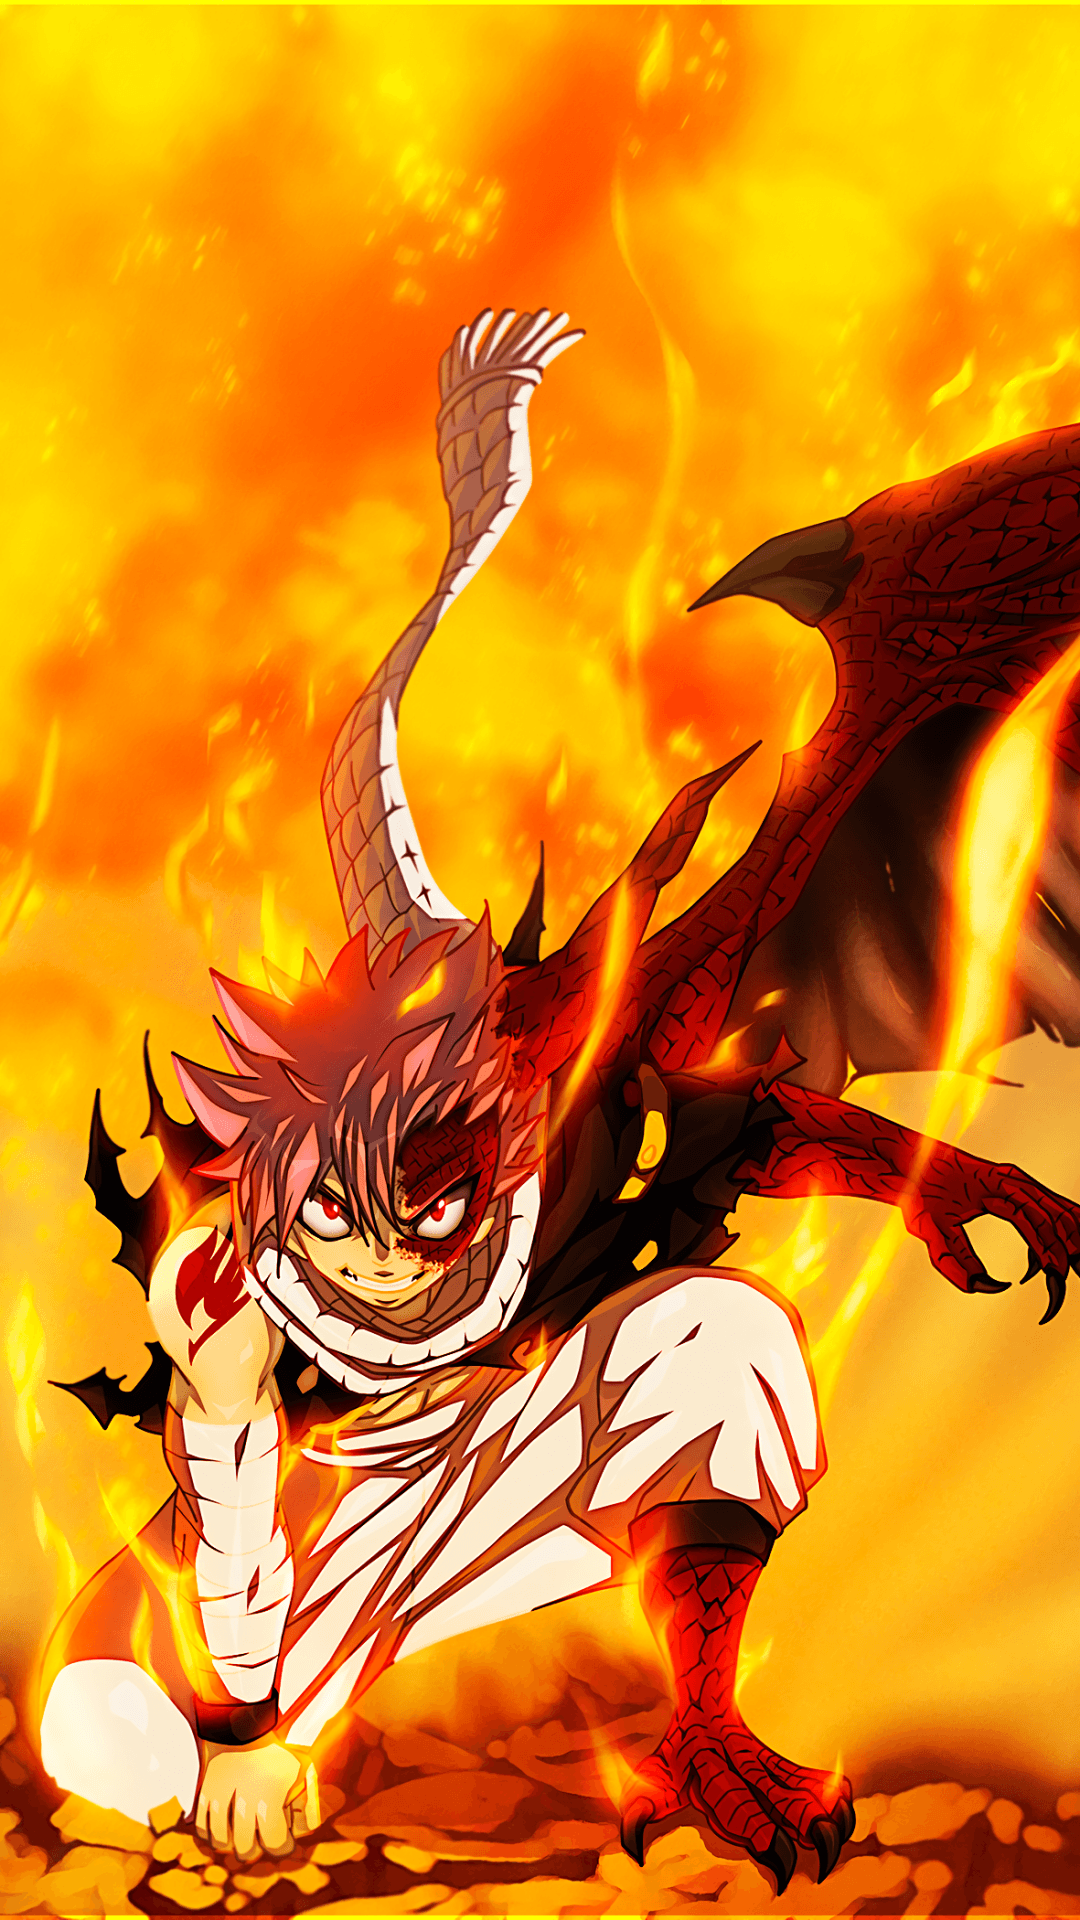 1080x1920 Anime Fairy Tail Natsu Dragneel Fire Mobile Wallpaper | ANIME is ...